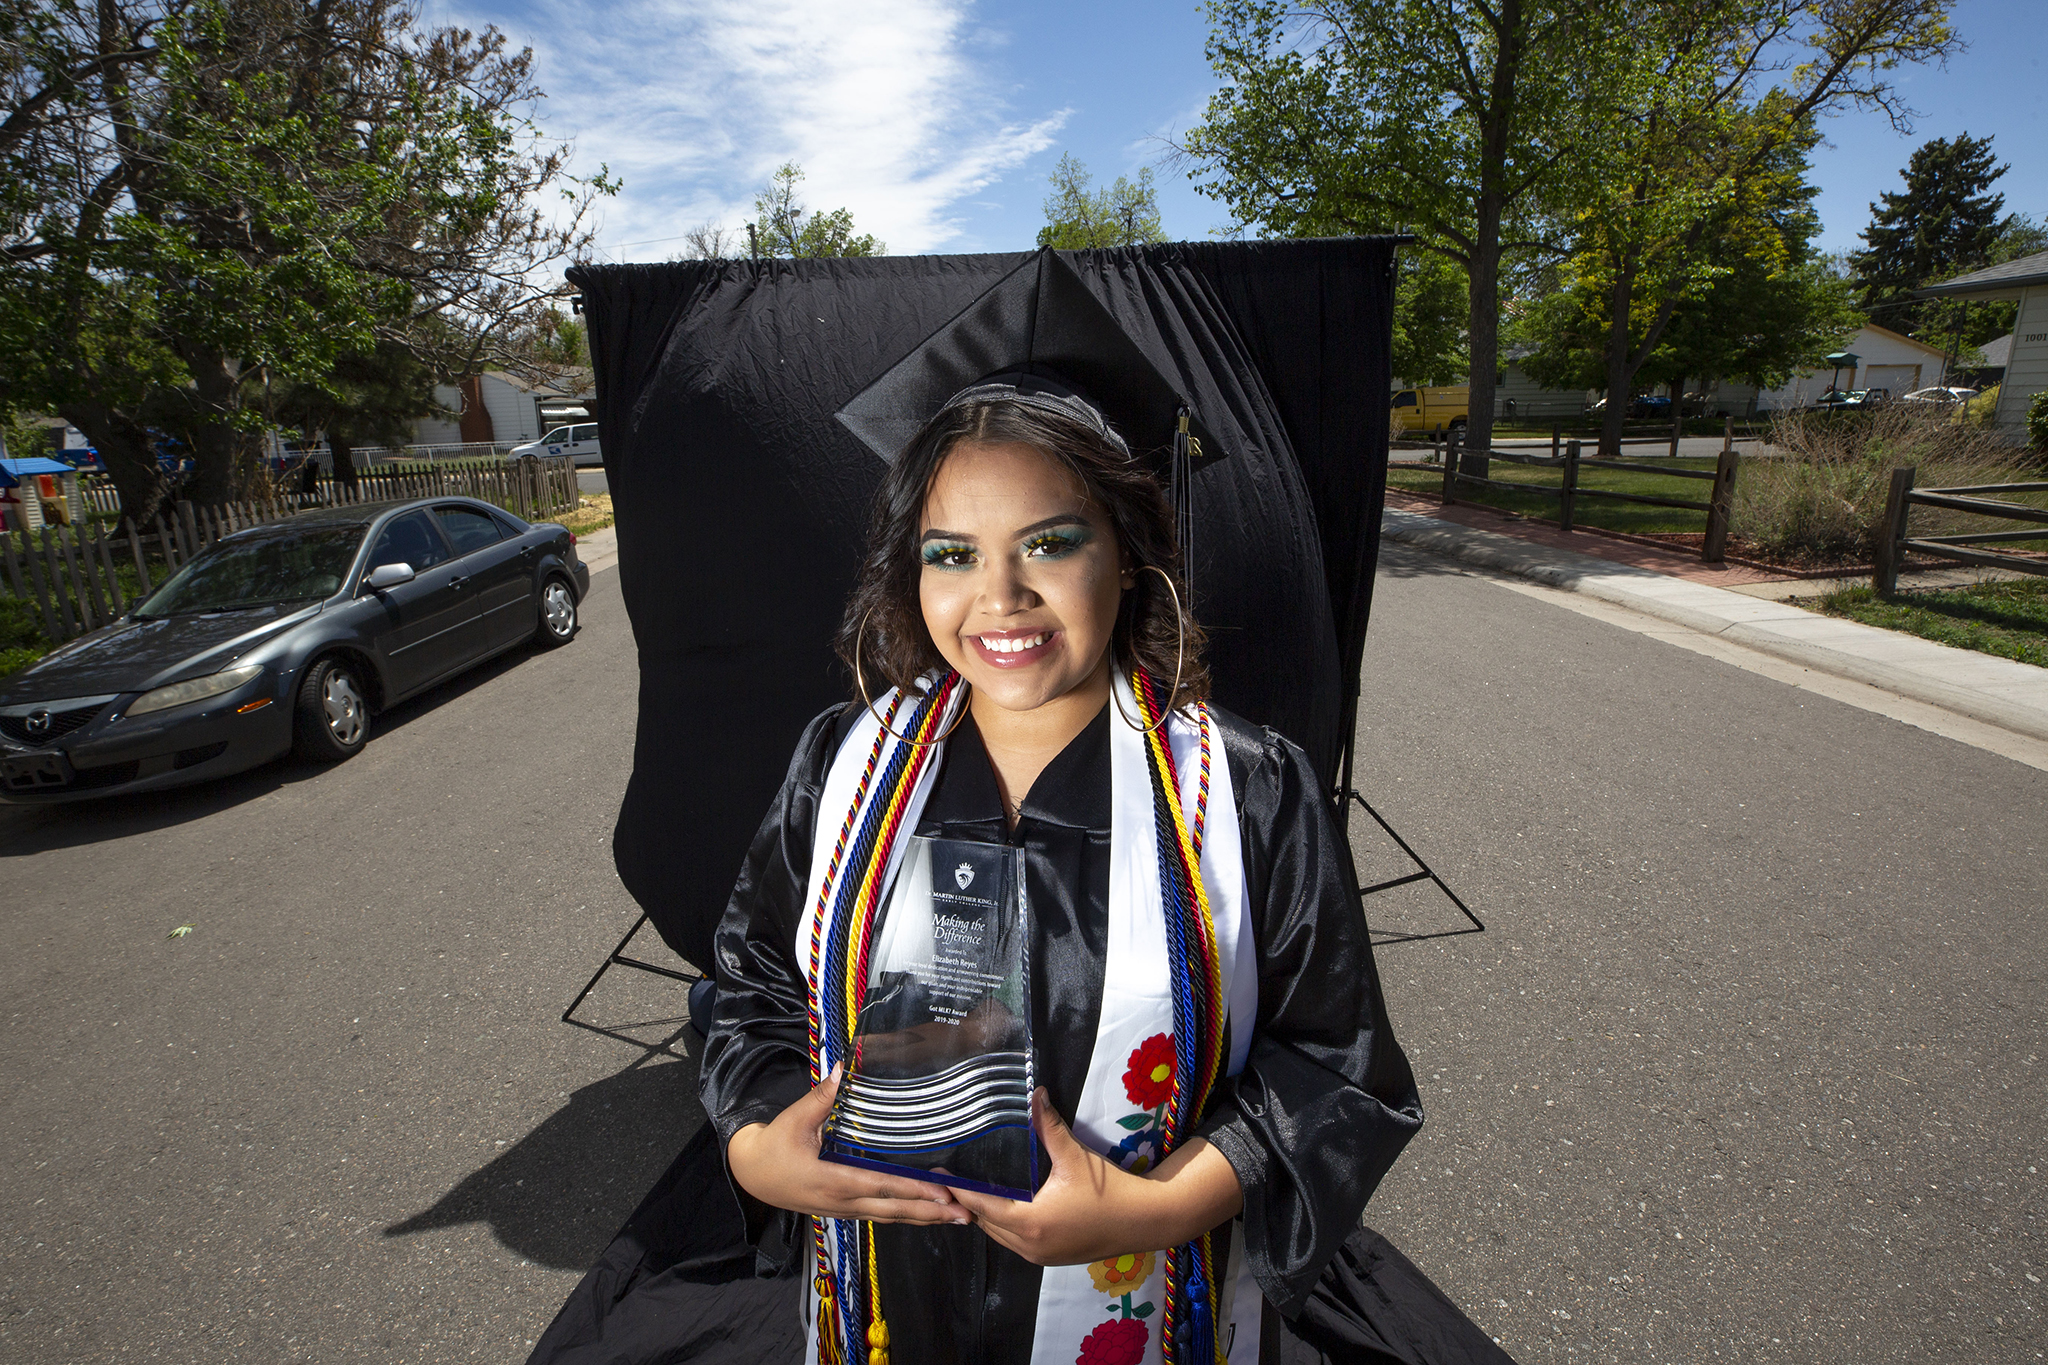 MLK Jr. Early College graduate Elizabeth Reyes poses for a cap-and-gown portrait in front of the house where she's been living in Aurora on May 20, 2020.